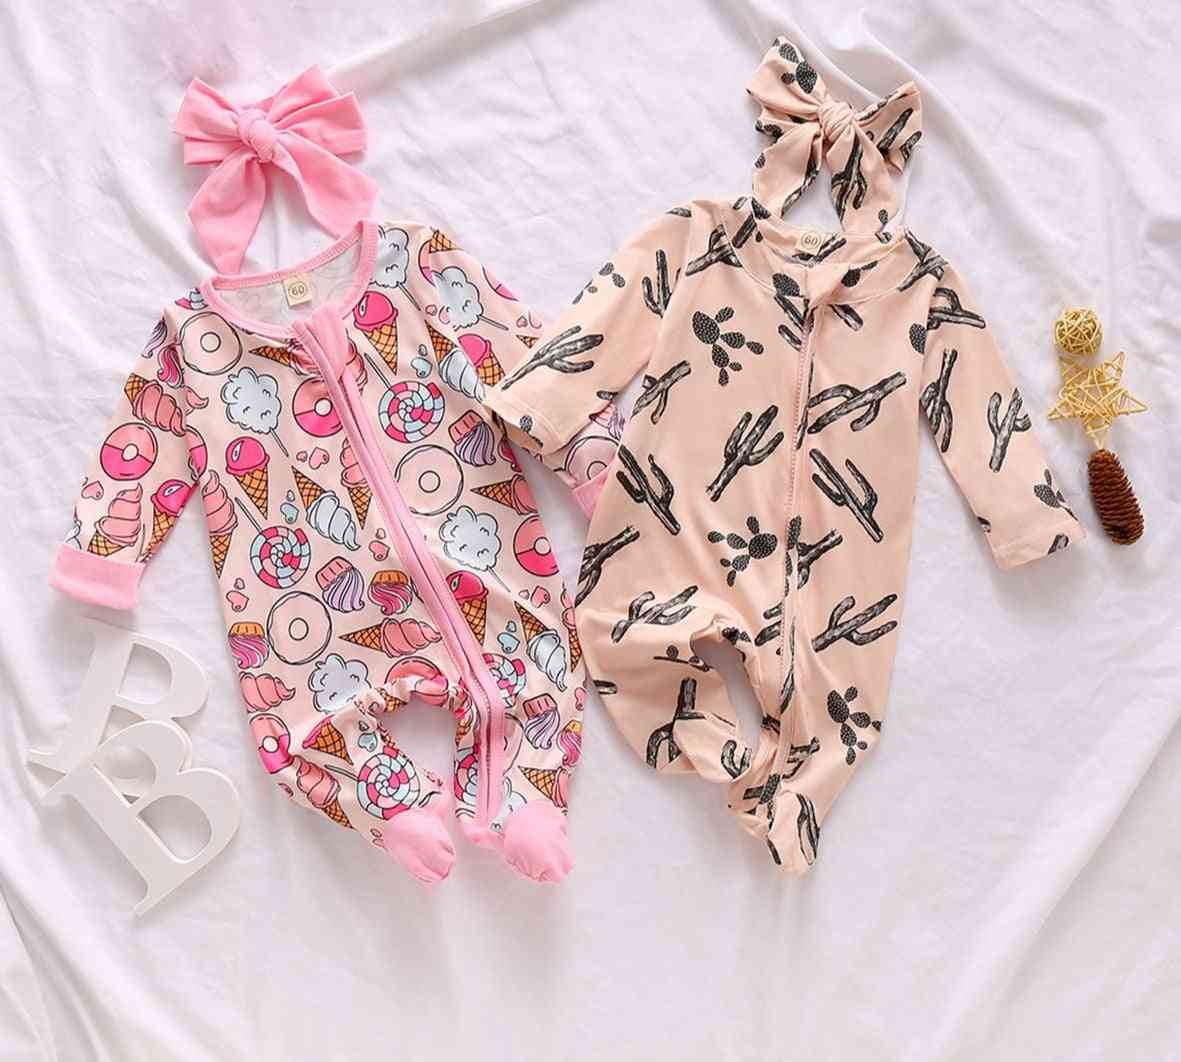 Baby 0-6m Newborn Infant Baby Footies Cute Ruffles Jumpsuit Clothes